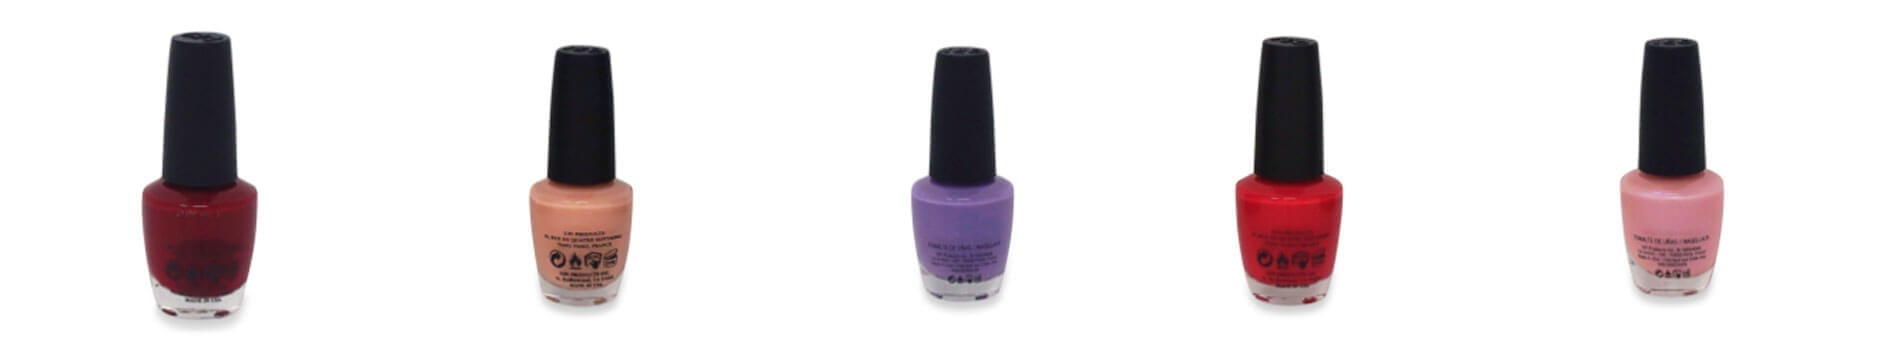 Nail Care Best Sellers